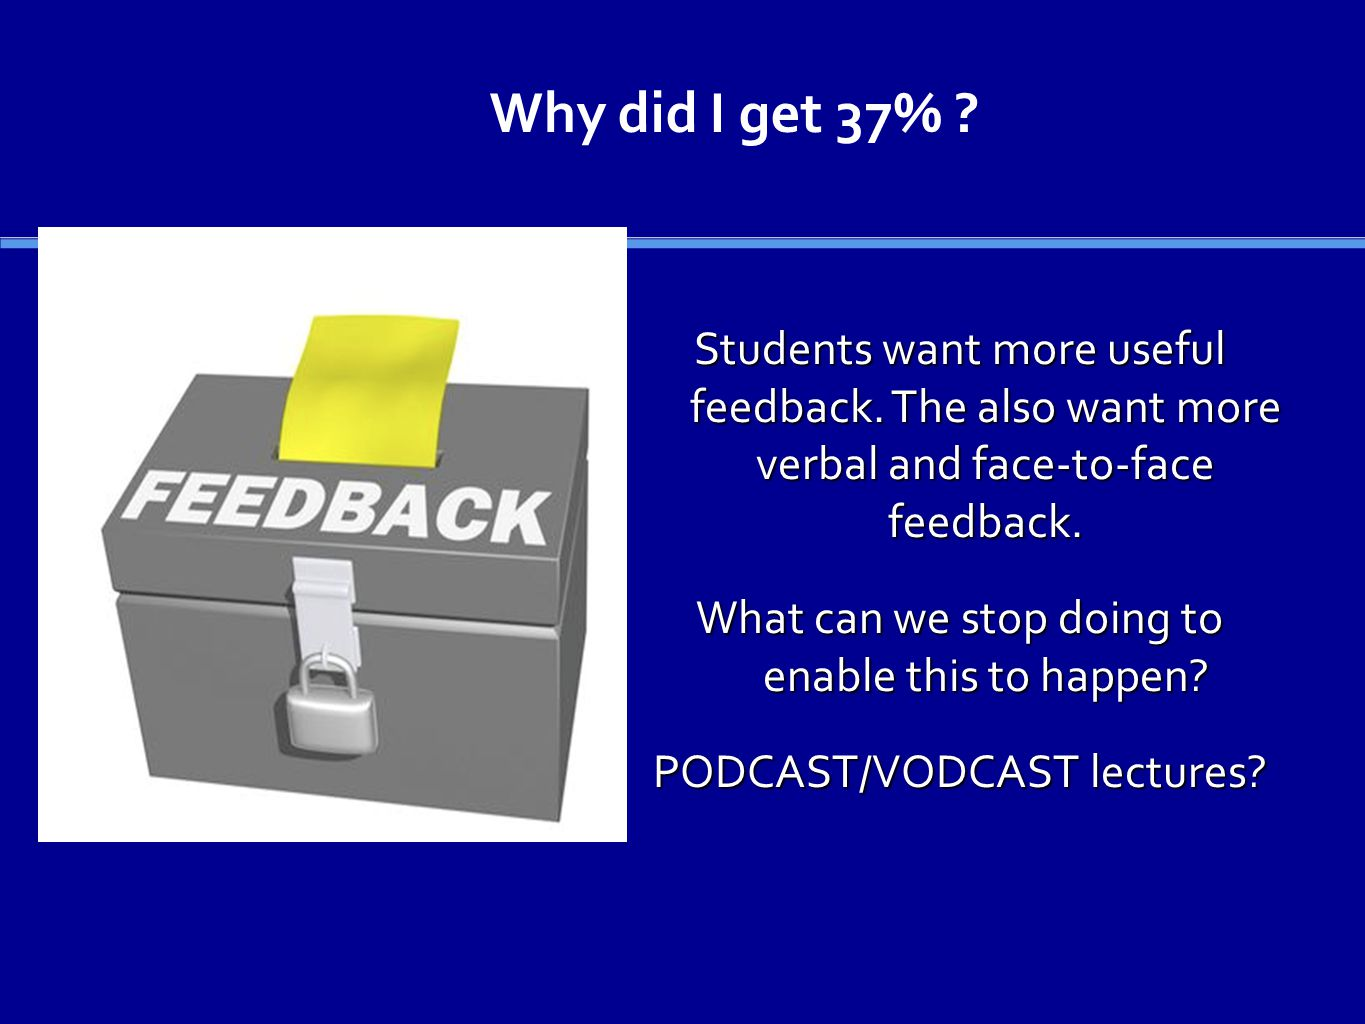 Students want more useful feedback. The also want more verbal and face-to-face feedback.